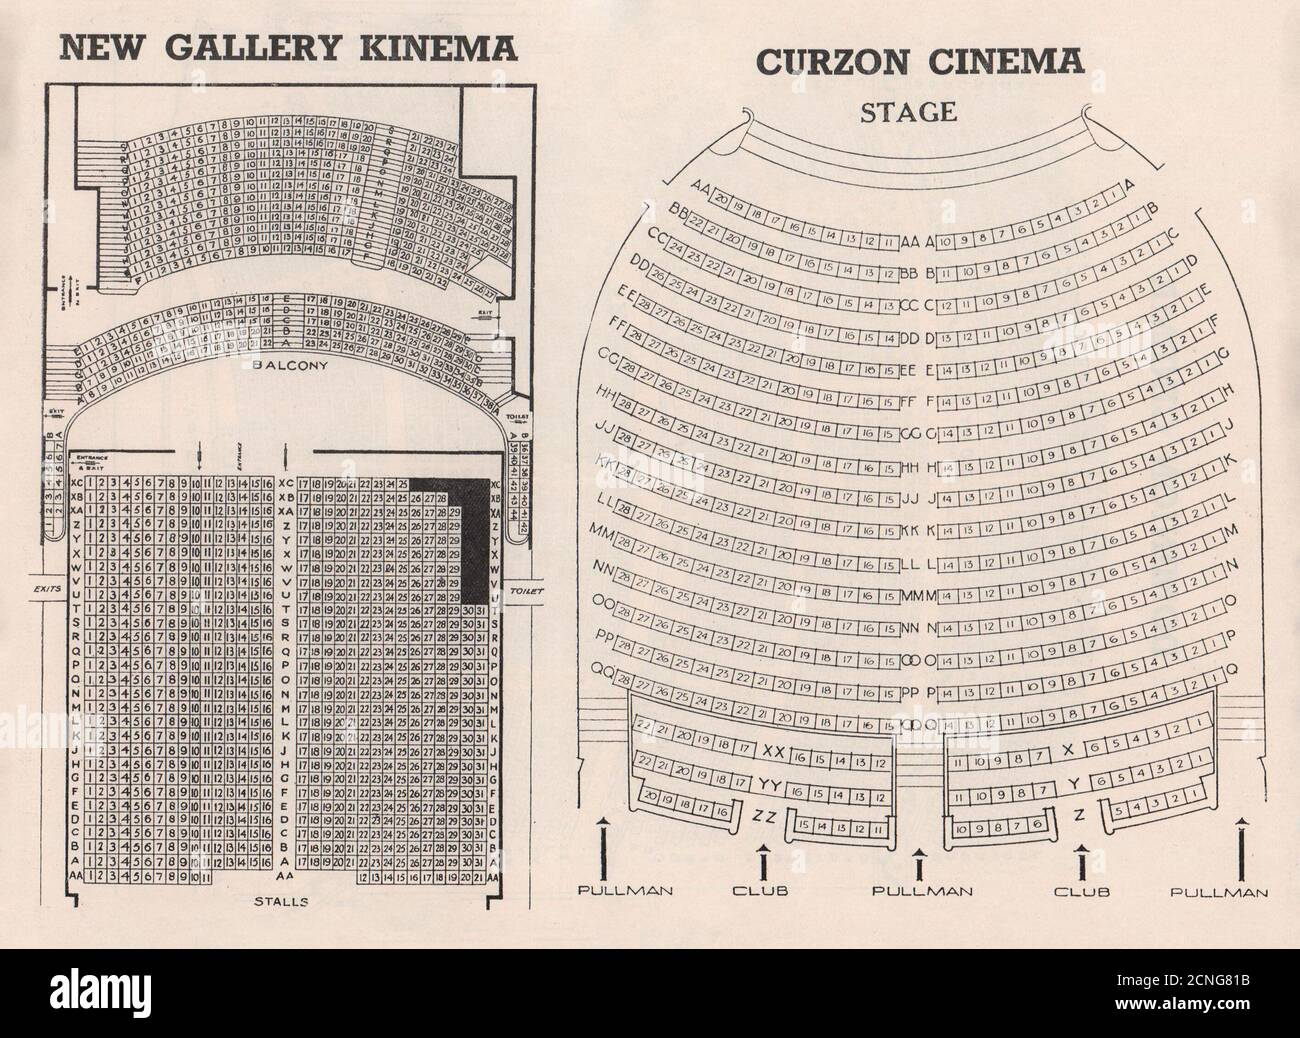 Regent Cinema High Resolution Stock Photography And Images Alamy